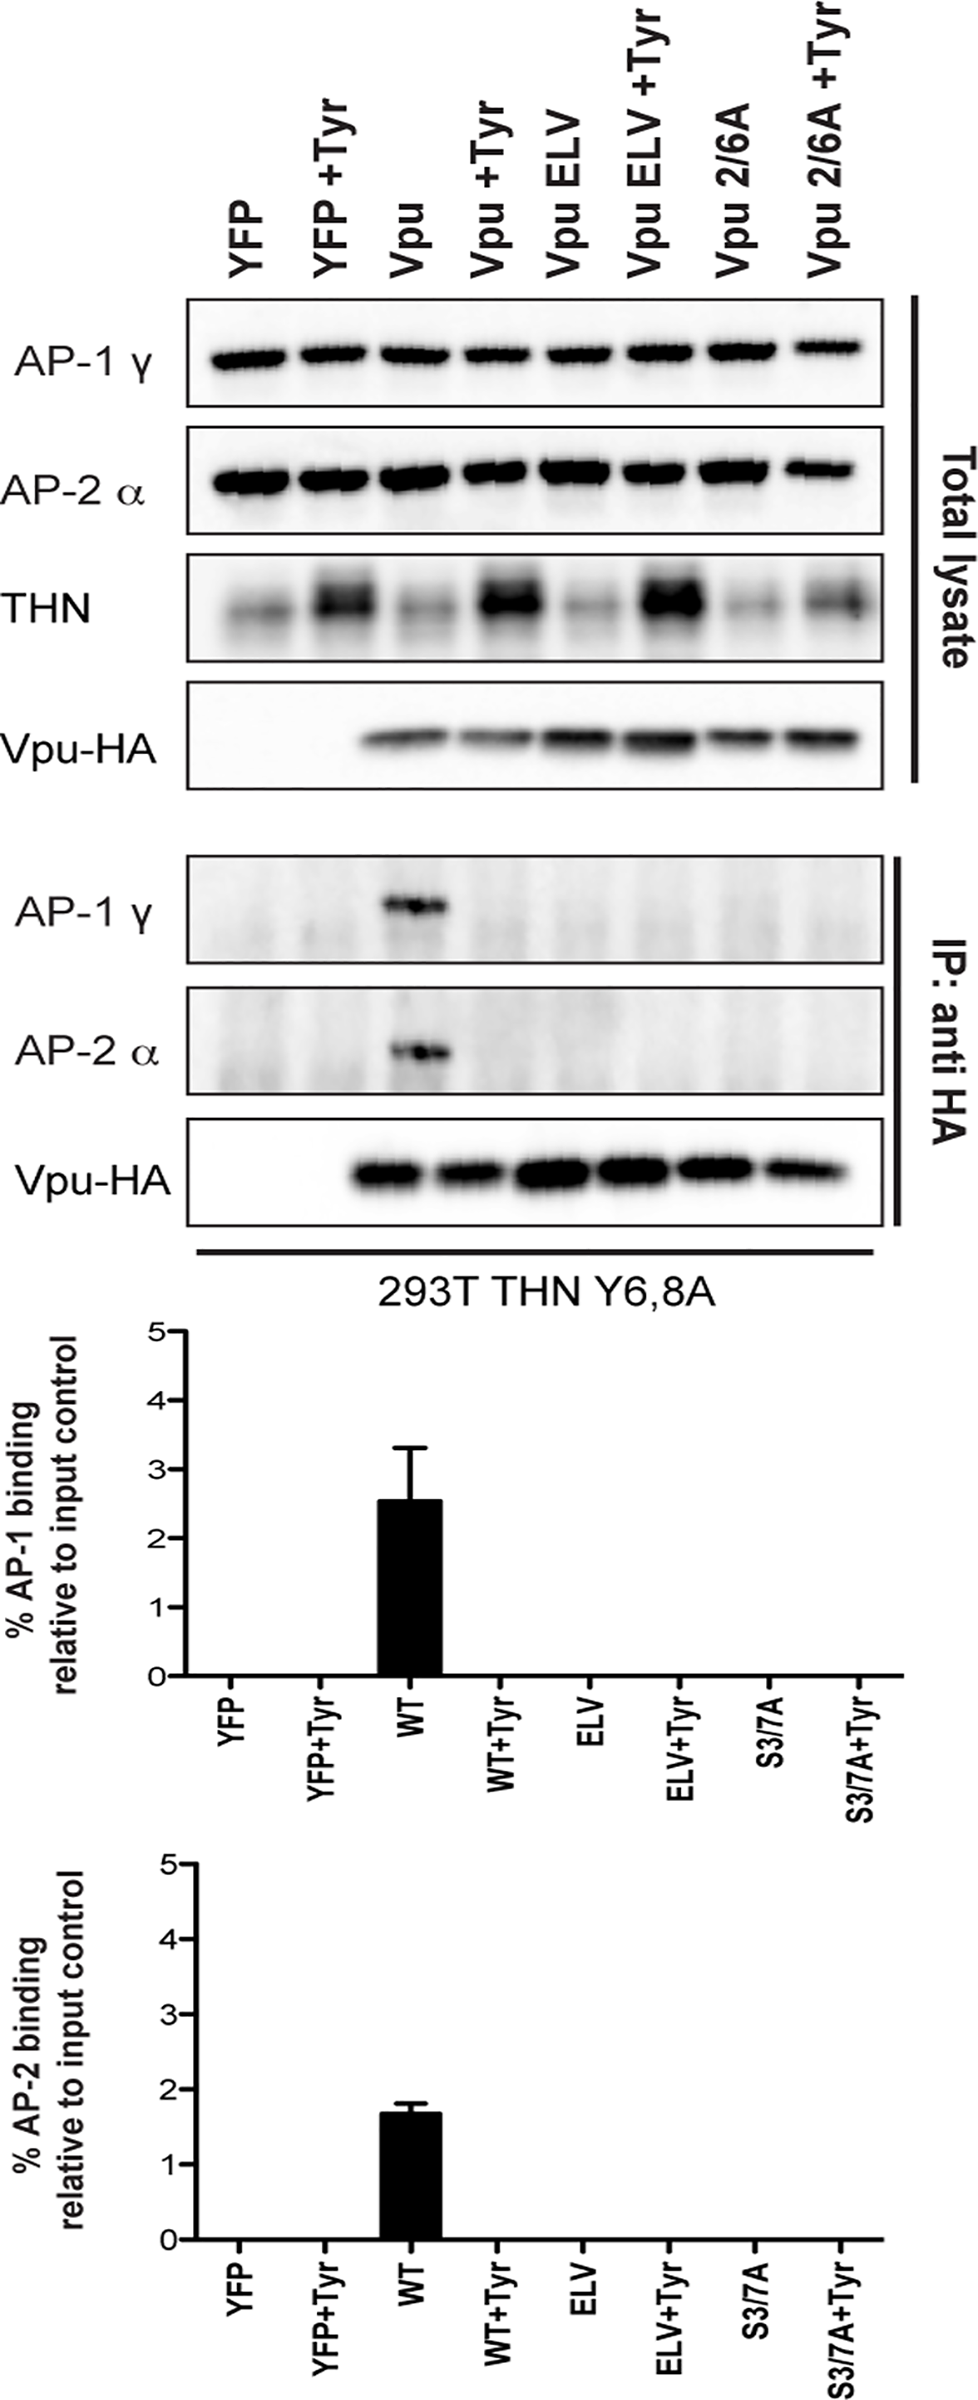 Vpu interaction with clathrin adaptors AP-1 and AP-2 is abrogated following treatment with CKII inhibitor, Tyrphostin.